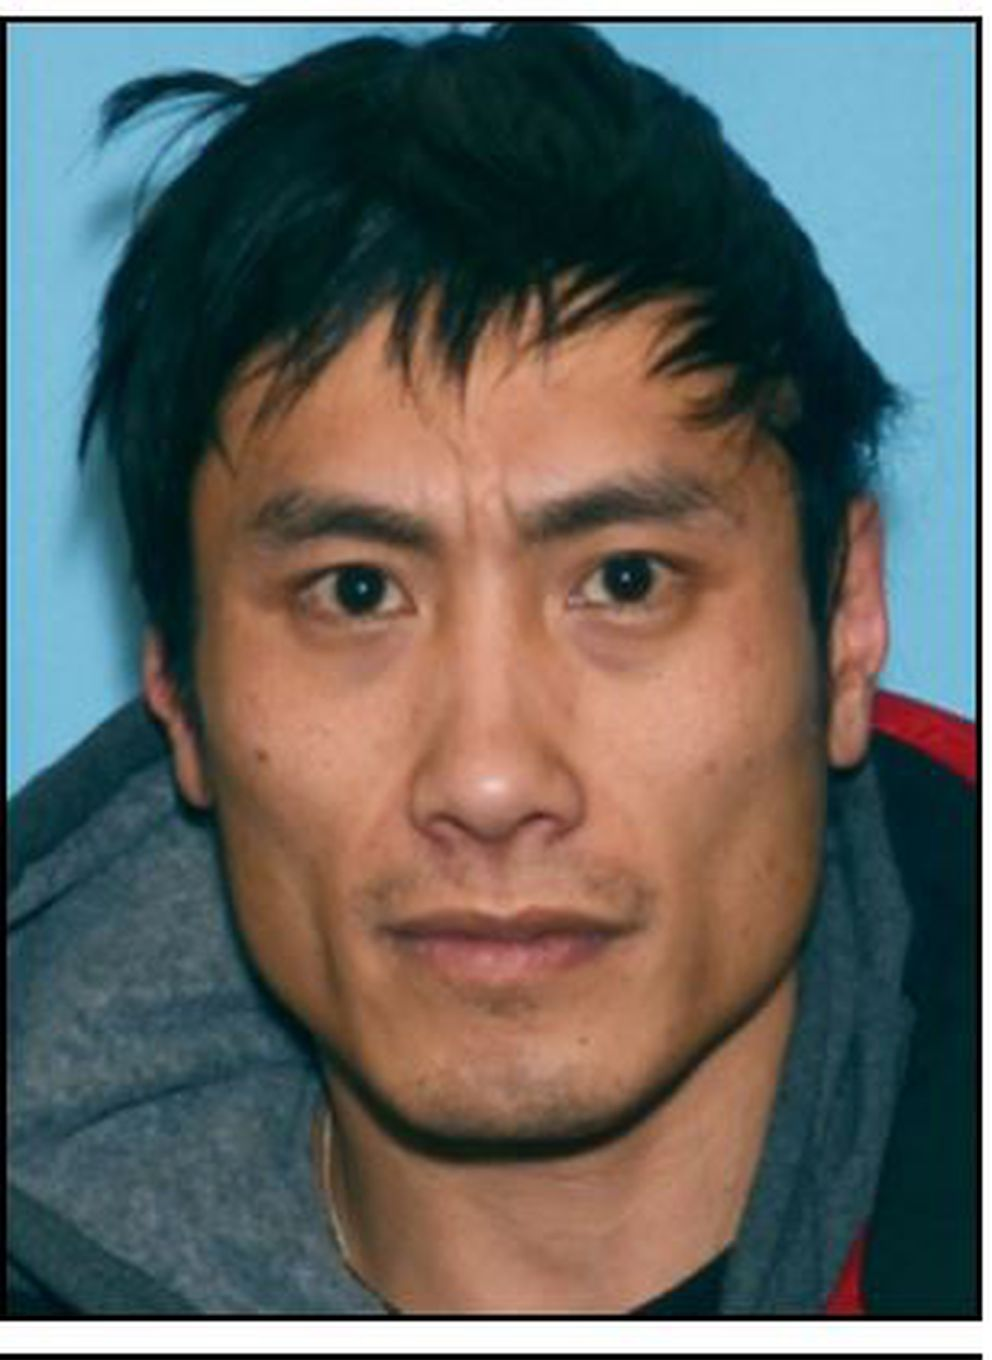 John Vang was charged with arson and burglary in the Feb. 4, 2019 fire at Yakitori Sushi House. (Photo Courtesy Anchorage Police Department)